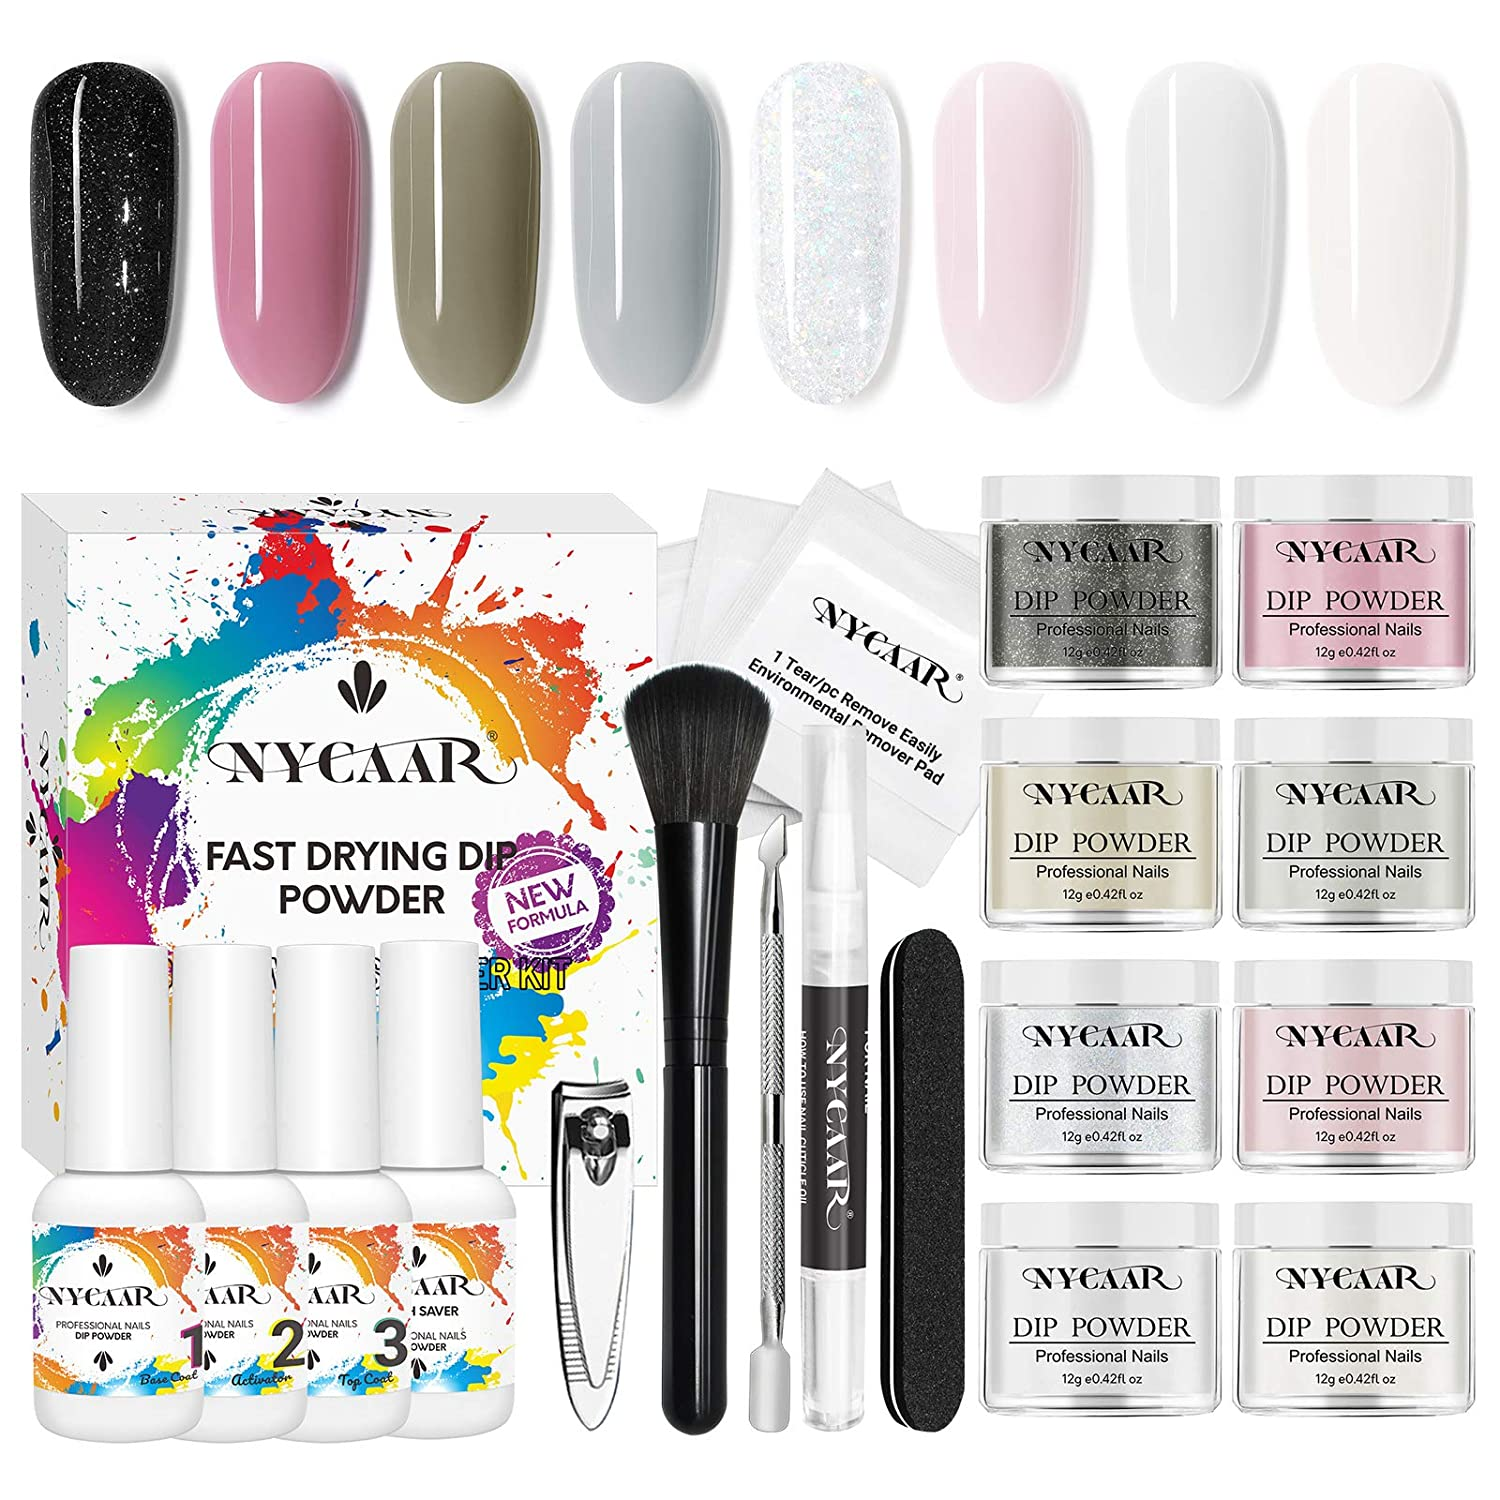 NYCAAR Dip Powder Nail Kit, 8 Colors Glitter Nail Dip Powder Set for Salon or Starter , with Polish Tool Set and Manicure Set at Home Nail Kit, for Mother's Day No Nail Lamp Needed